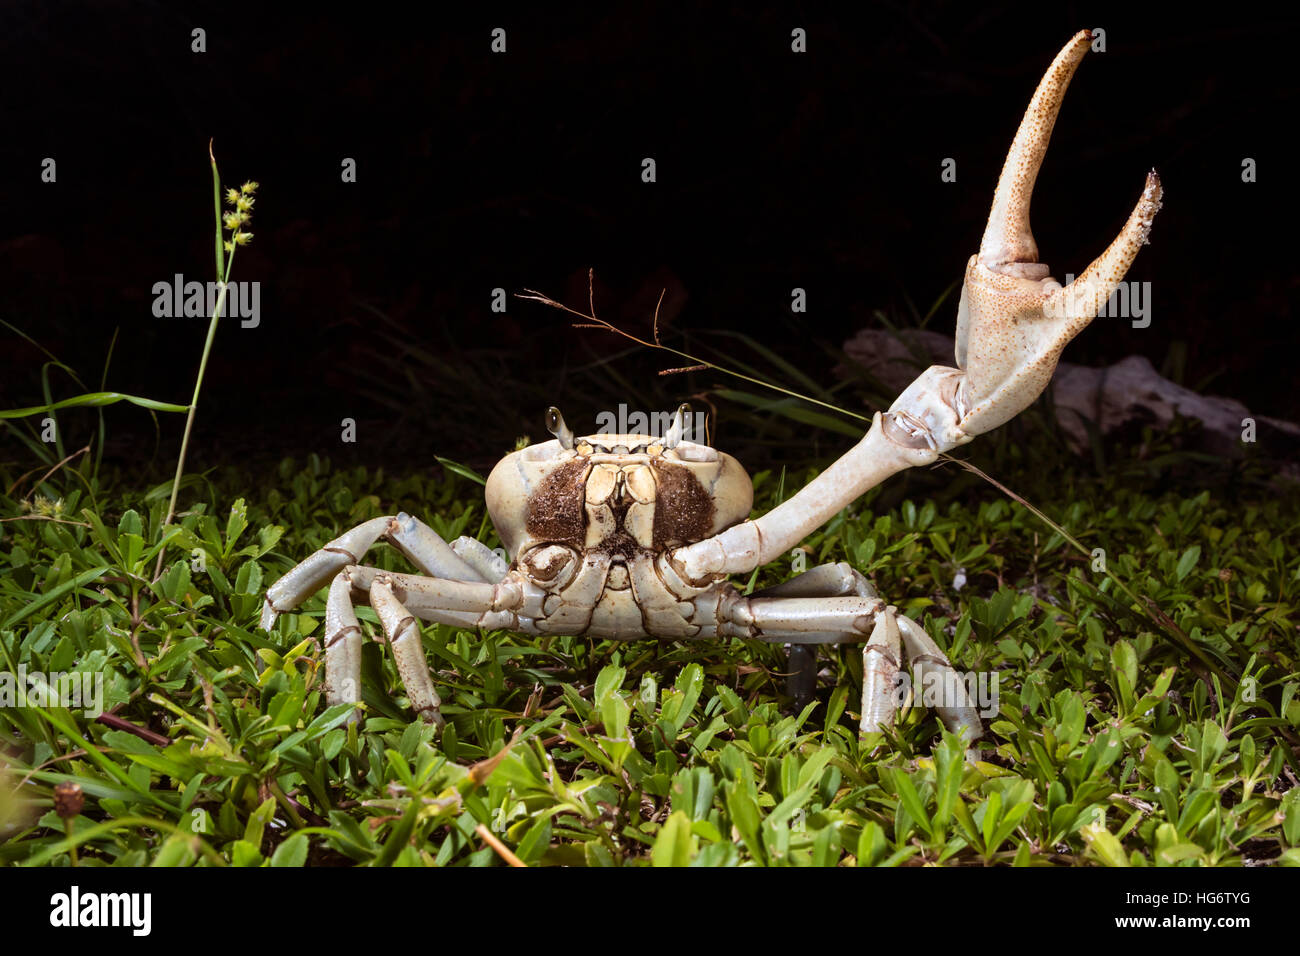 Blue land crab (Cardisoma guanhumi) in defensive posture at night, Caye Caulker Island, Belize, Central America - Stock Image